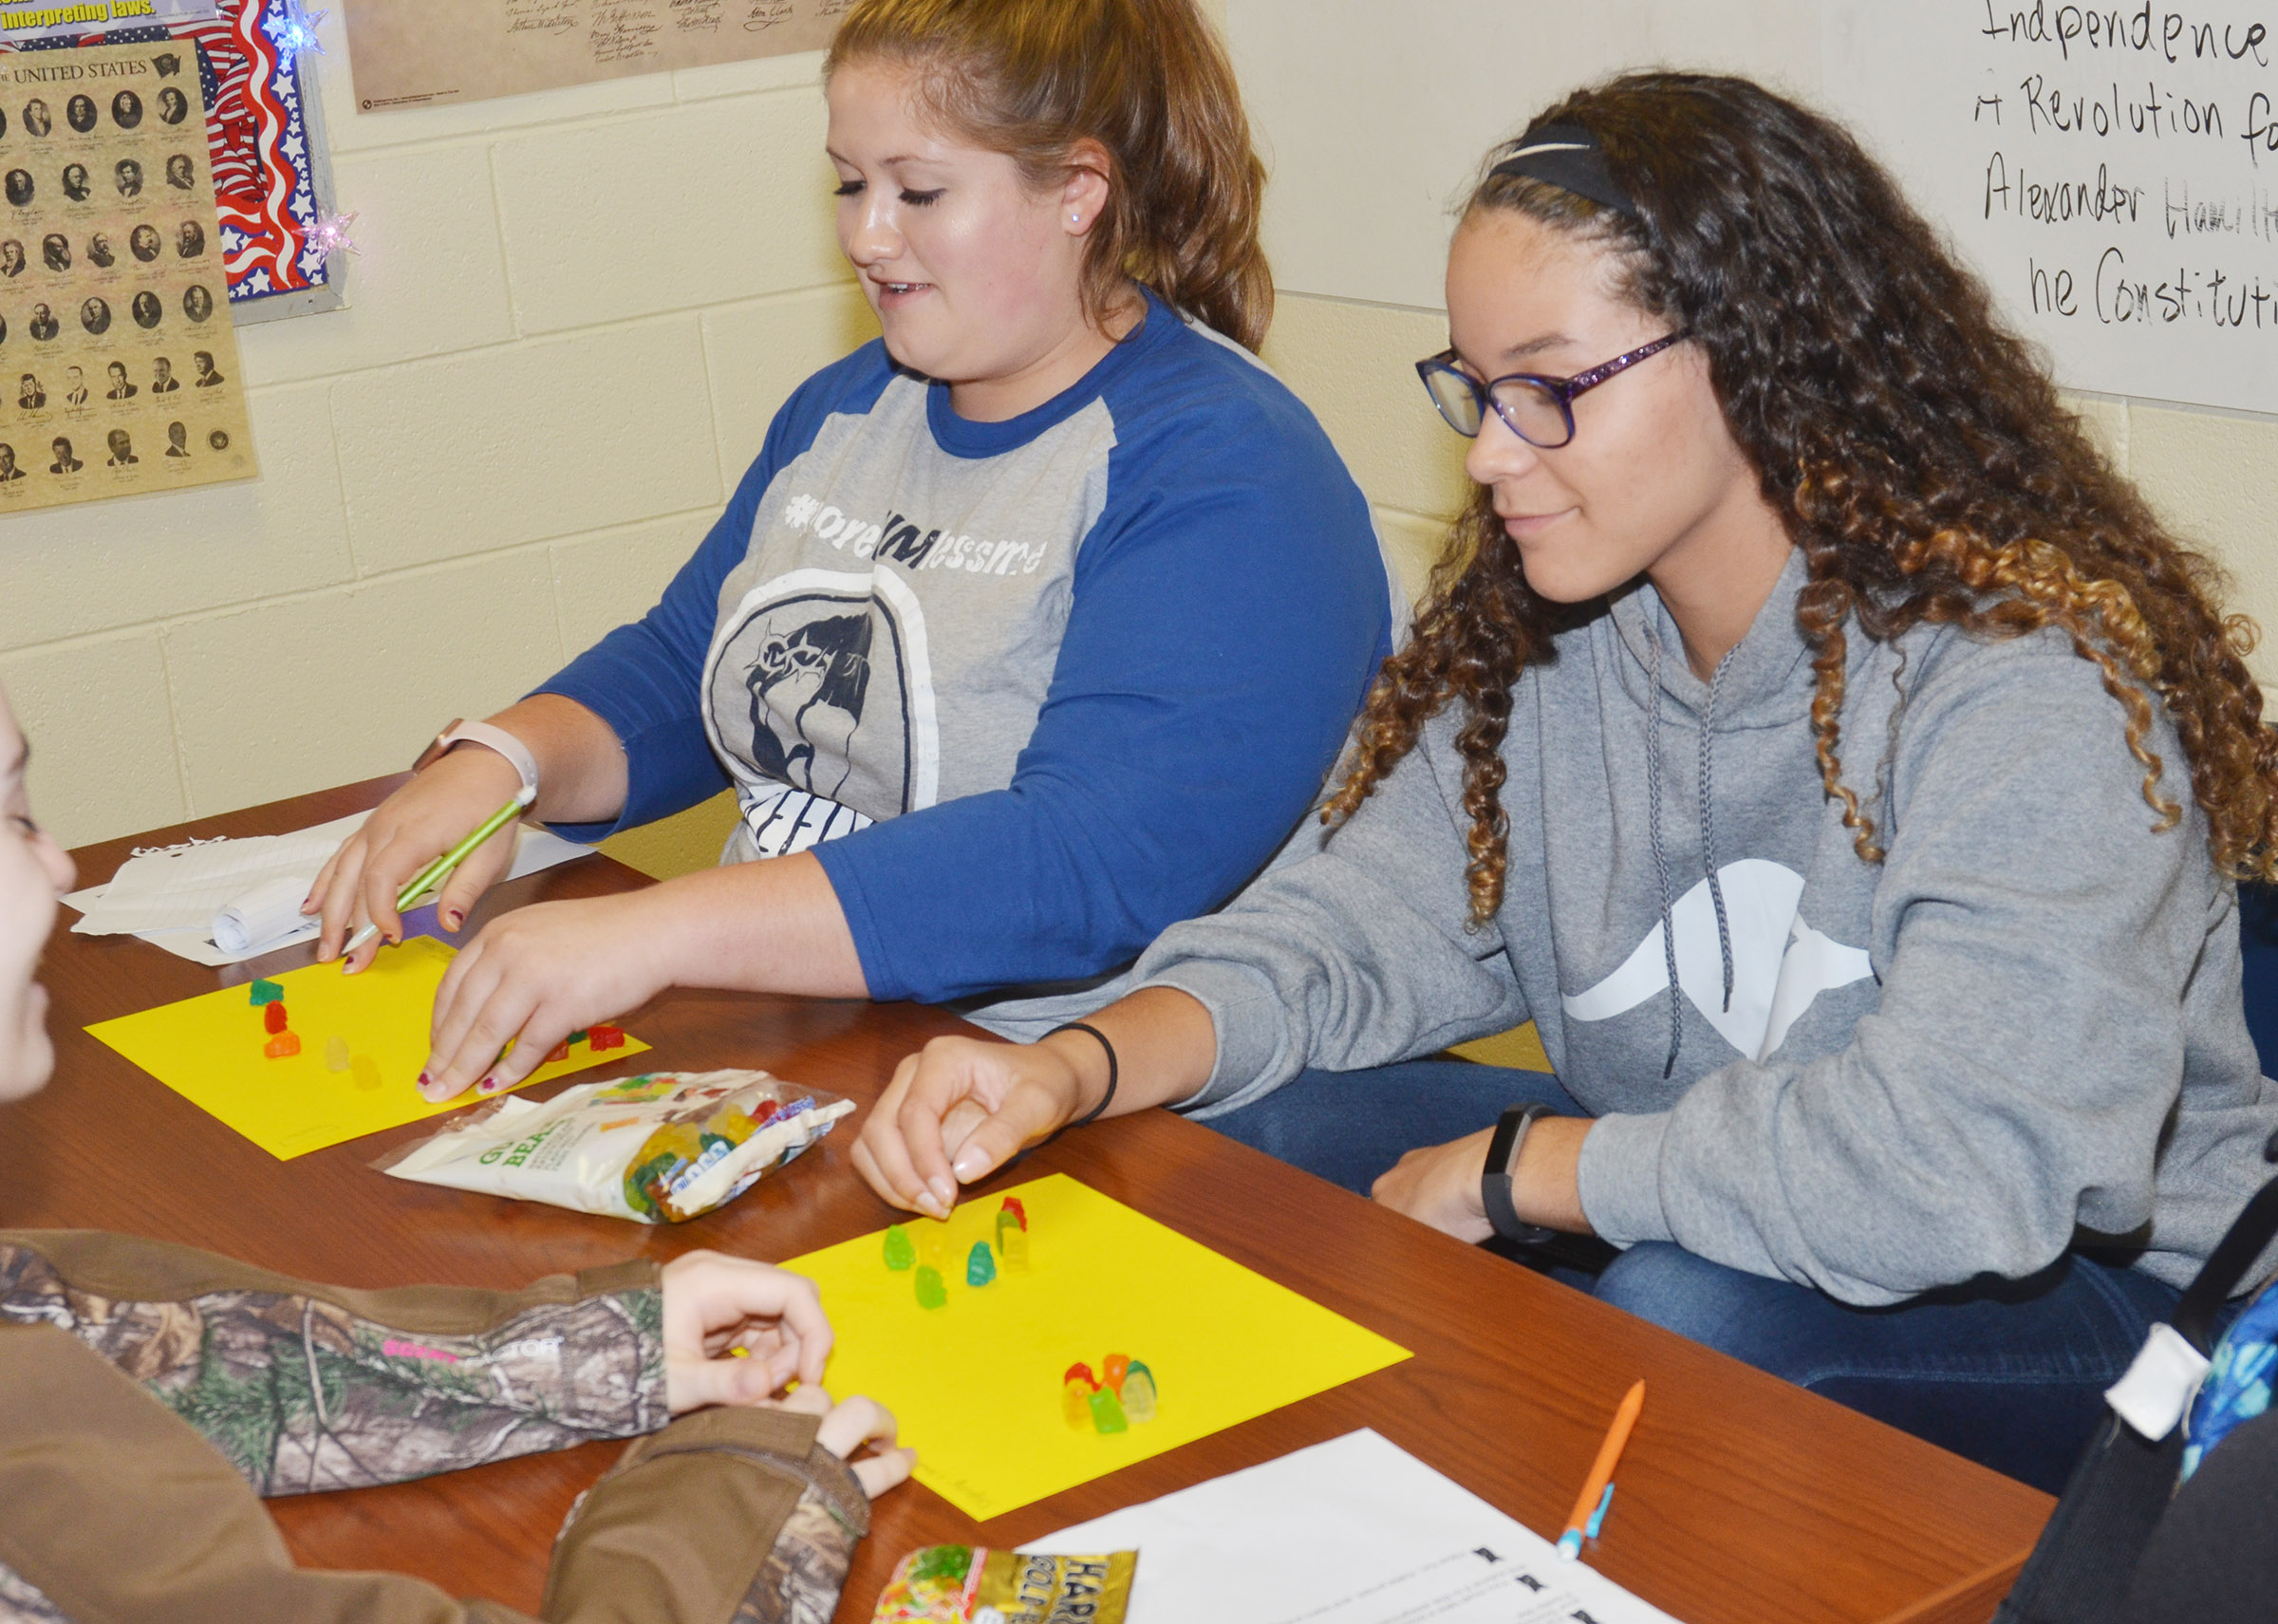 CHS sophomores Aleah Knifley, at left, and Taliyah Hazelwood build their gummy bear government models.